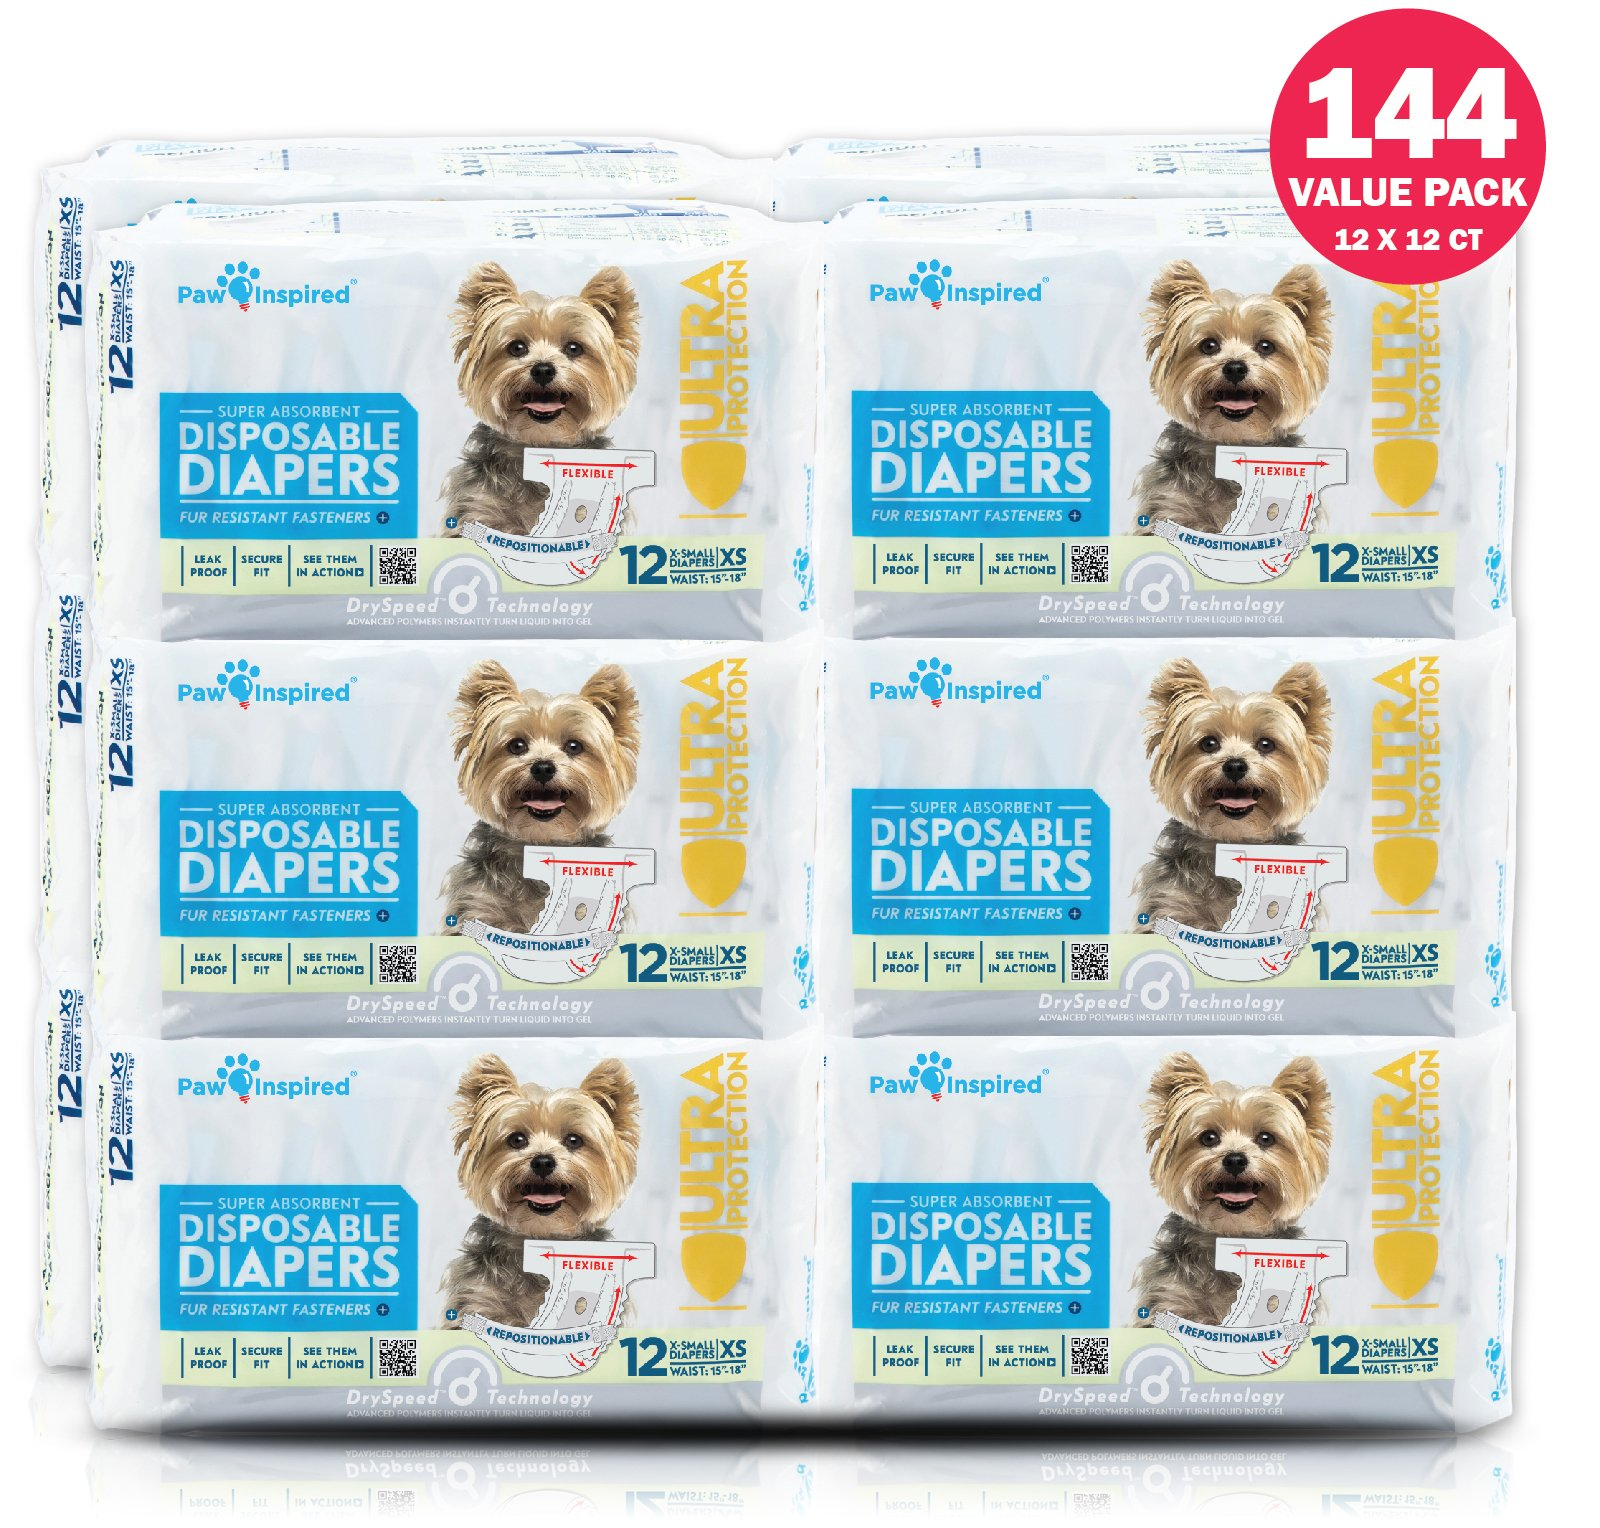 PAW INSPIRED Ultra Protection Female Disposable Dog Diapers Bulk (X-Small, 144 Count) by Paw Inspired